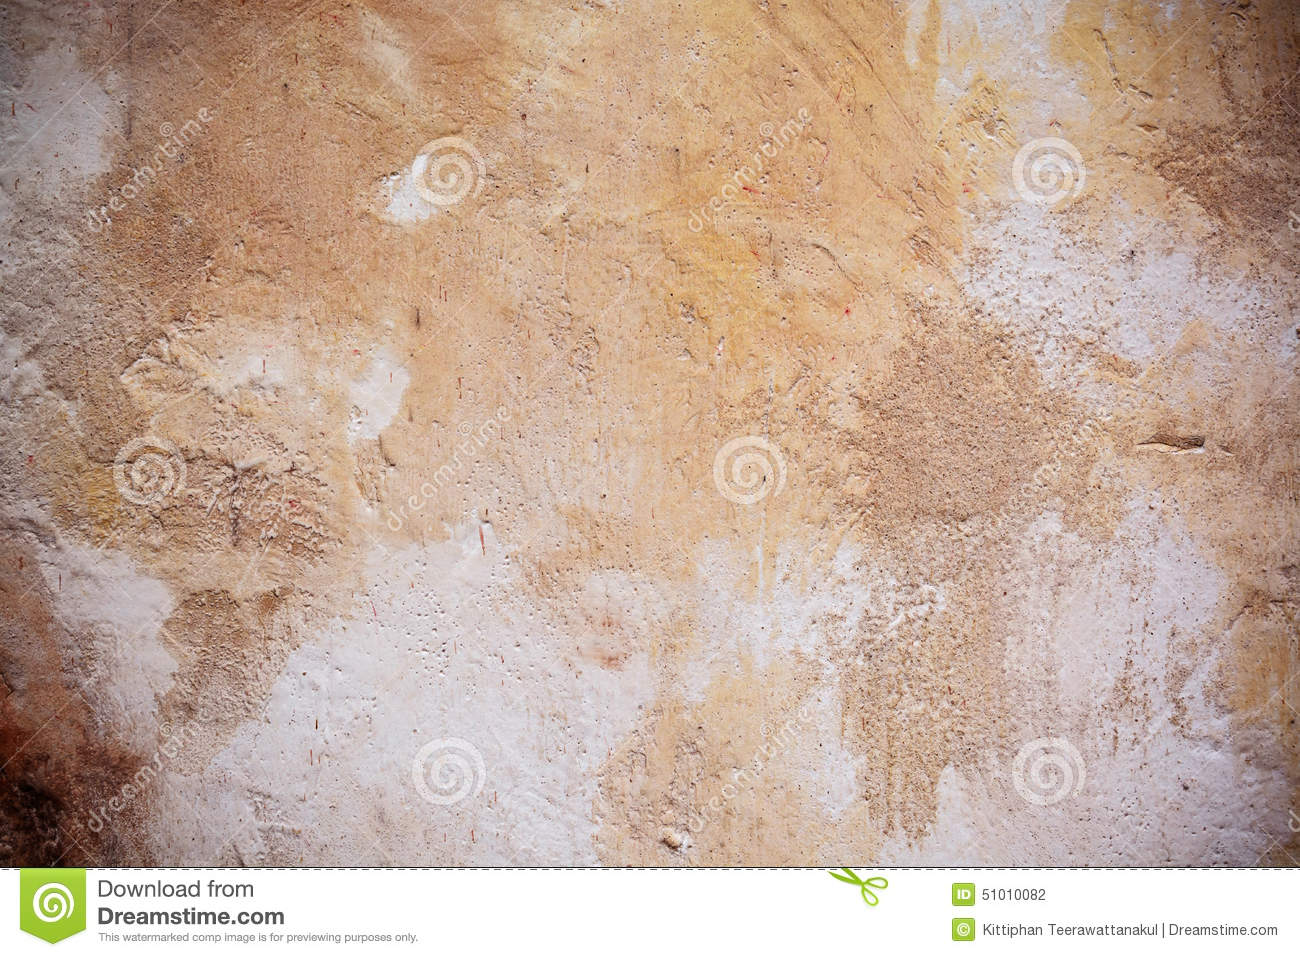 Grunge textures and background with vignette